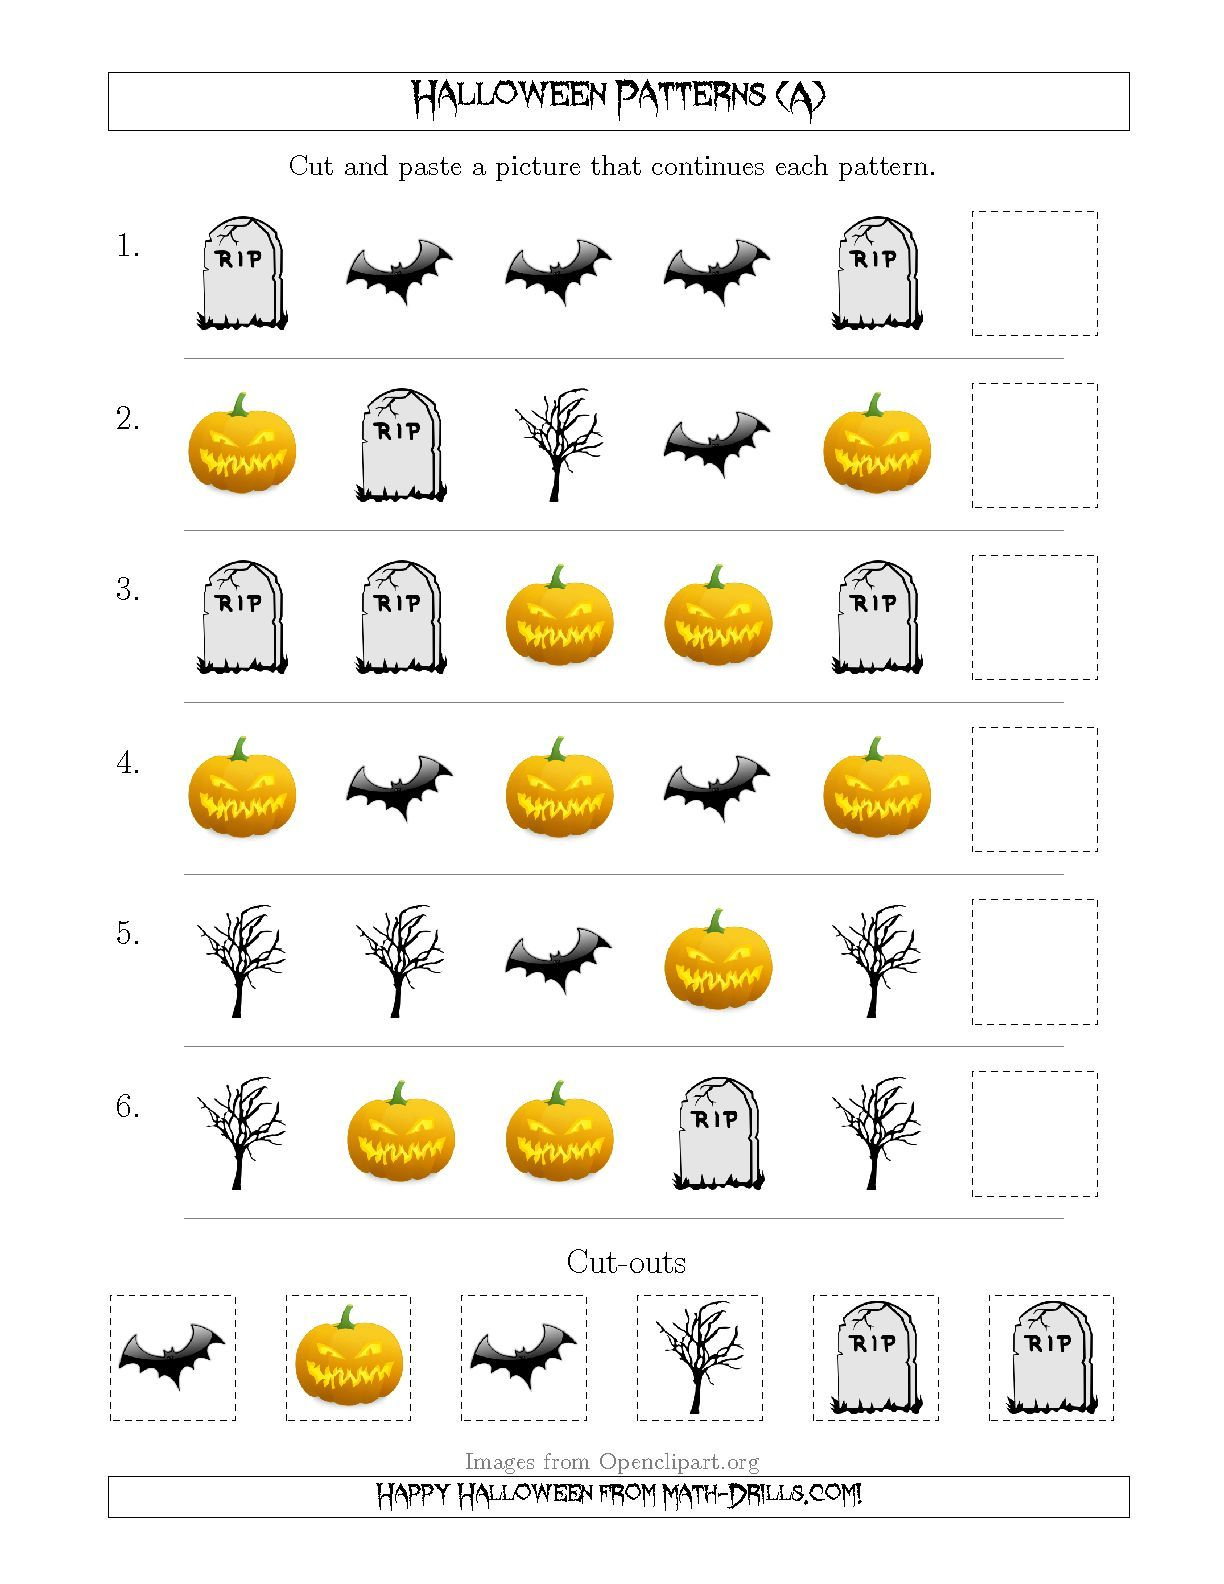 Scary Halloween Picture Patterns With Shape Attribute Only A Patterning Worksheet Halloween Math Worksheets Scary Halloween Pictures Halloween Patterns [ 1584 x 1224 Pixel ]